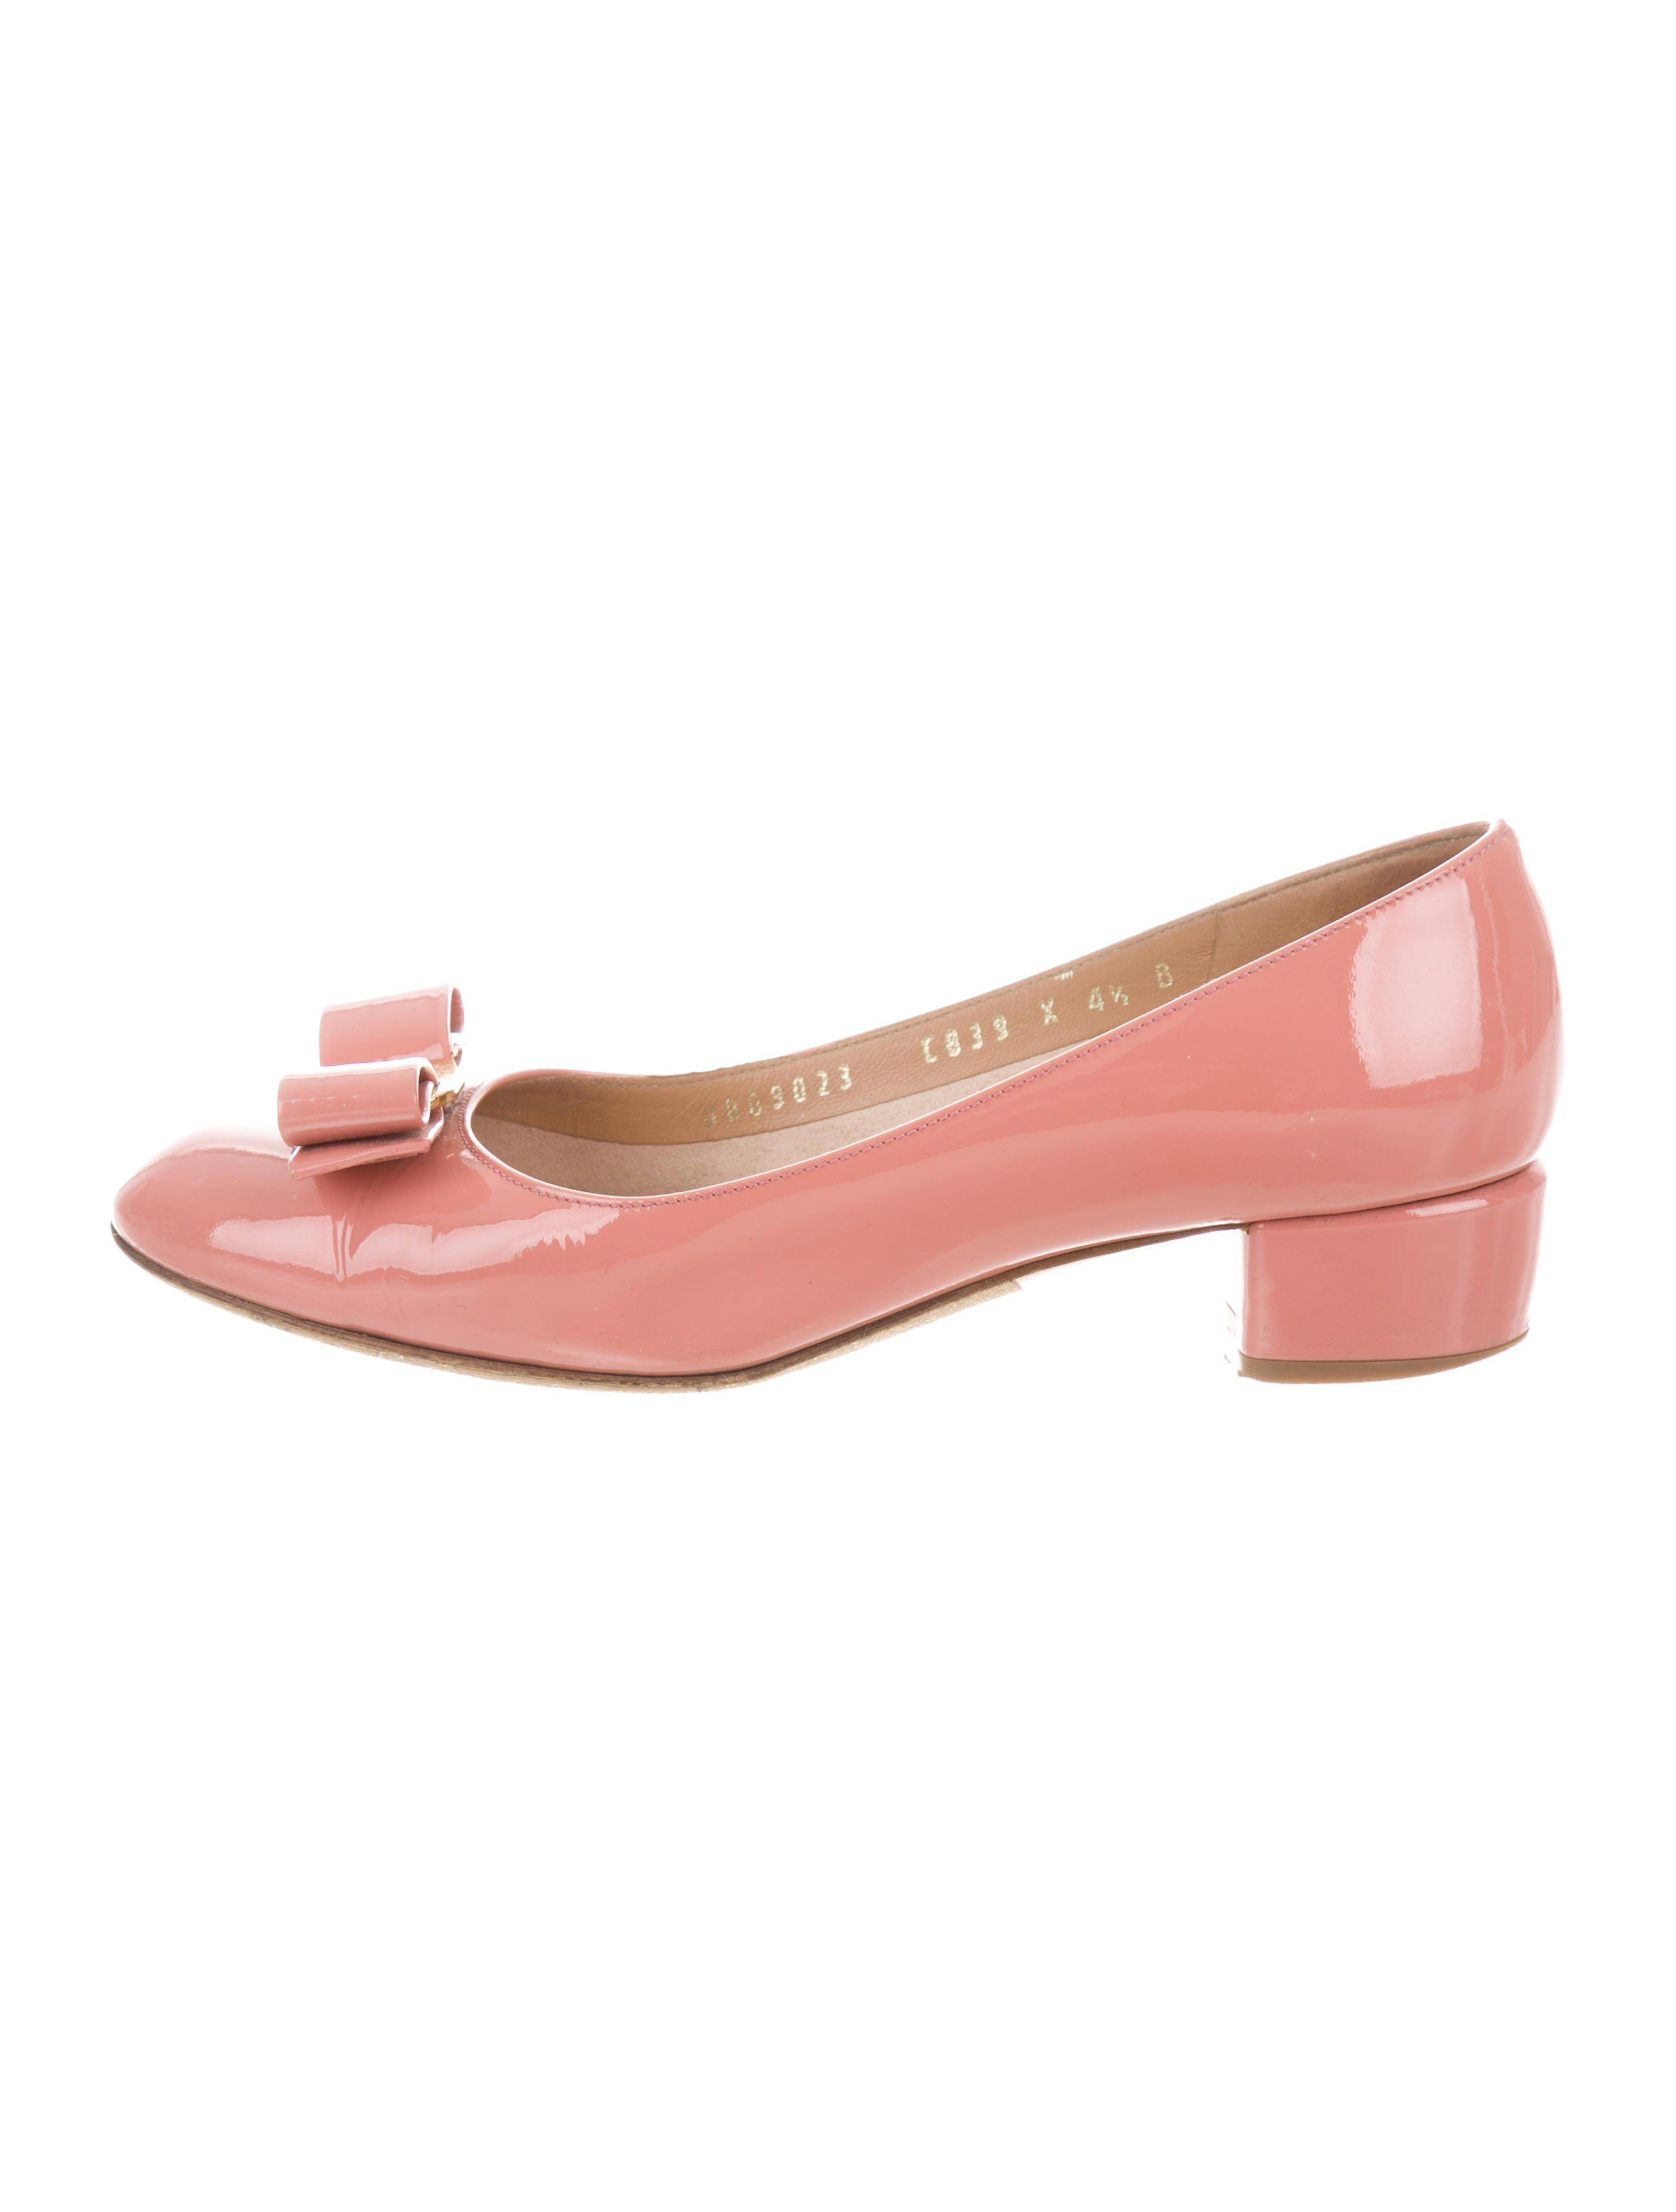 d73a581e7fe Lyst - Ferragamo Patent Leather Vara Pumps in Pink